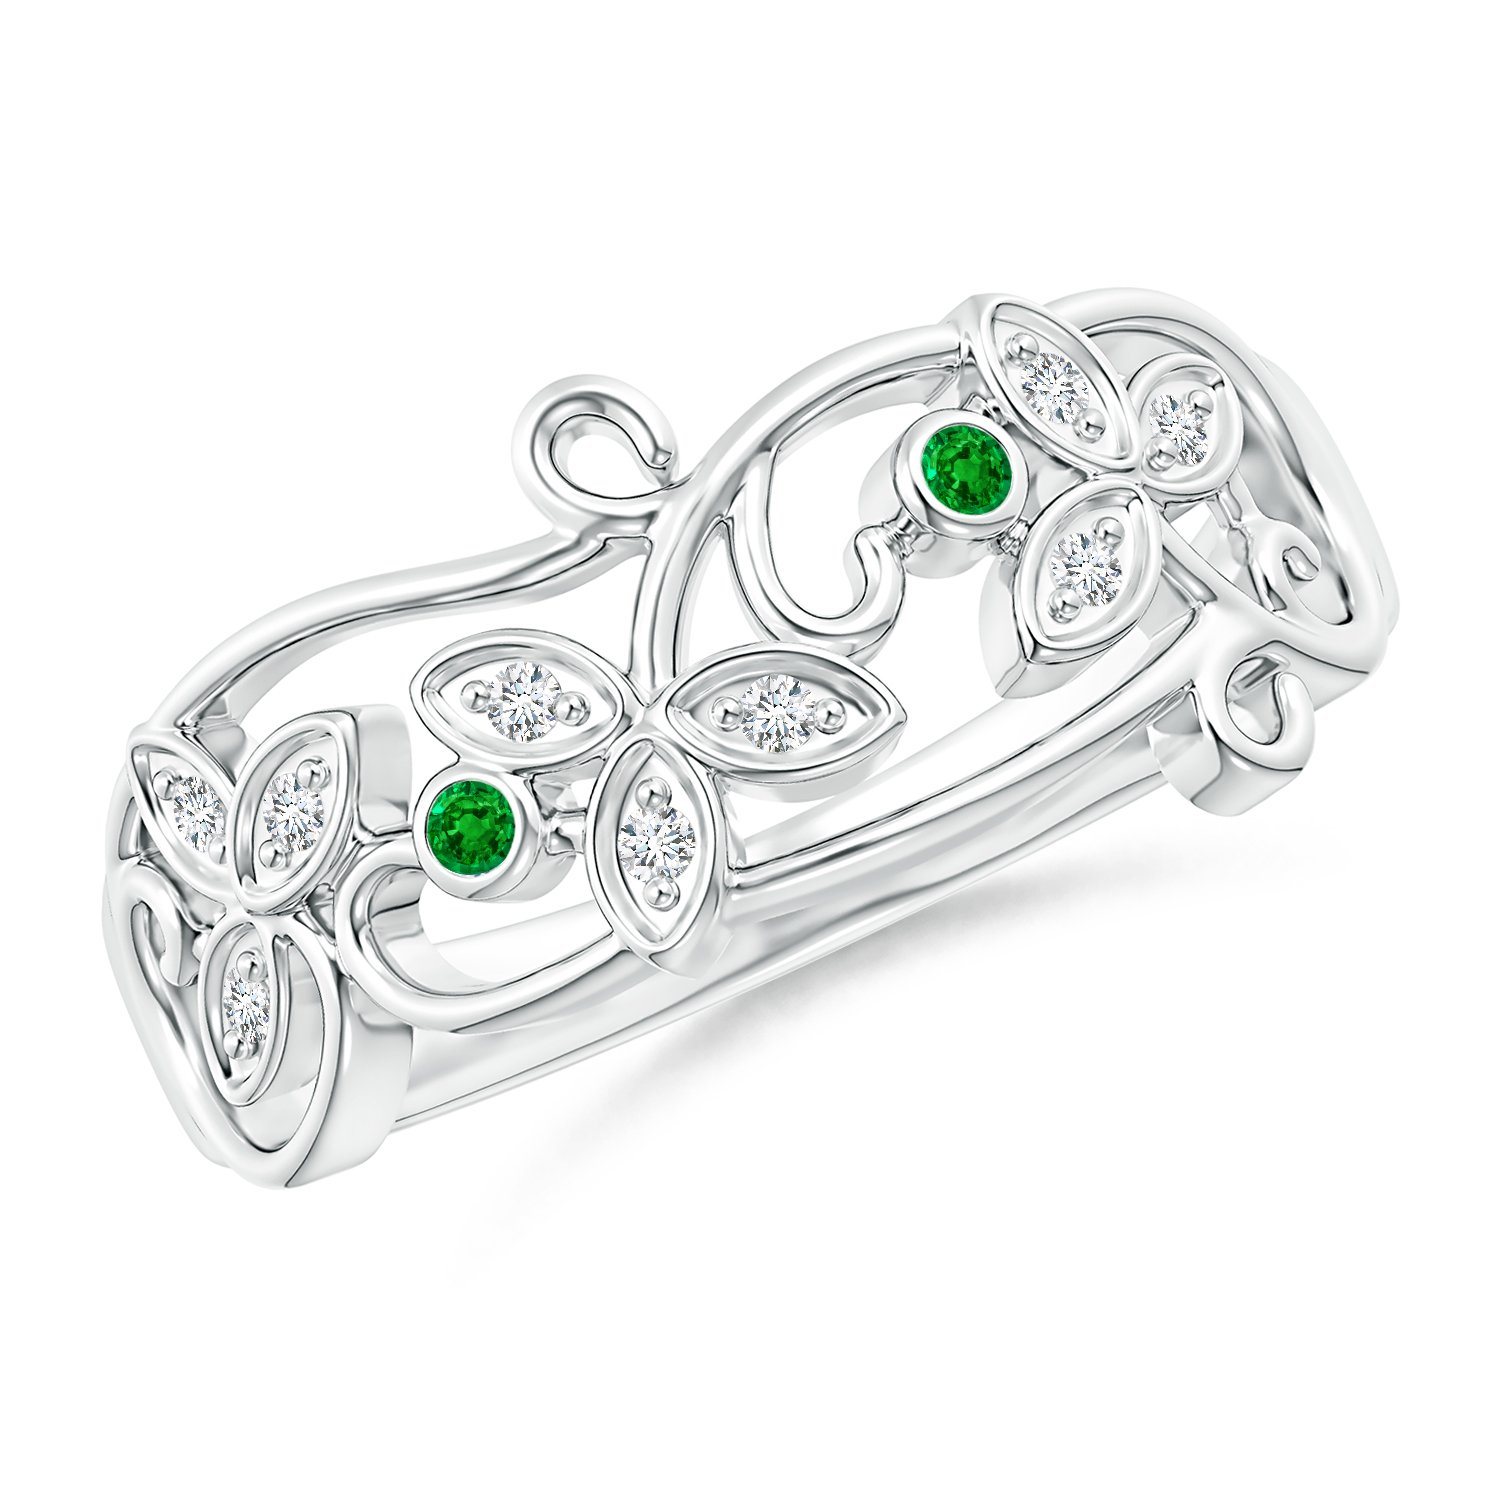 Vintage Style Emerald and Diamond Flower Scroll Ring in 14K White Gold (1.5mm Emerald) by Angara.com